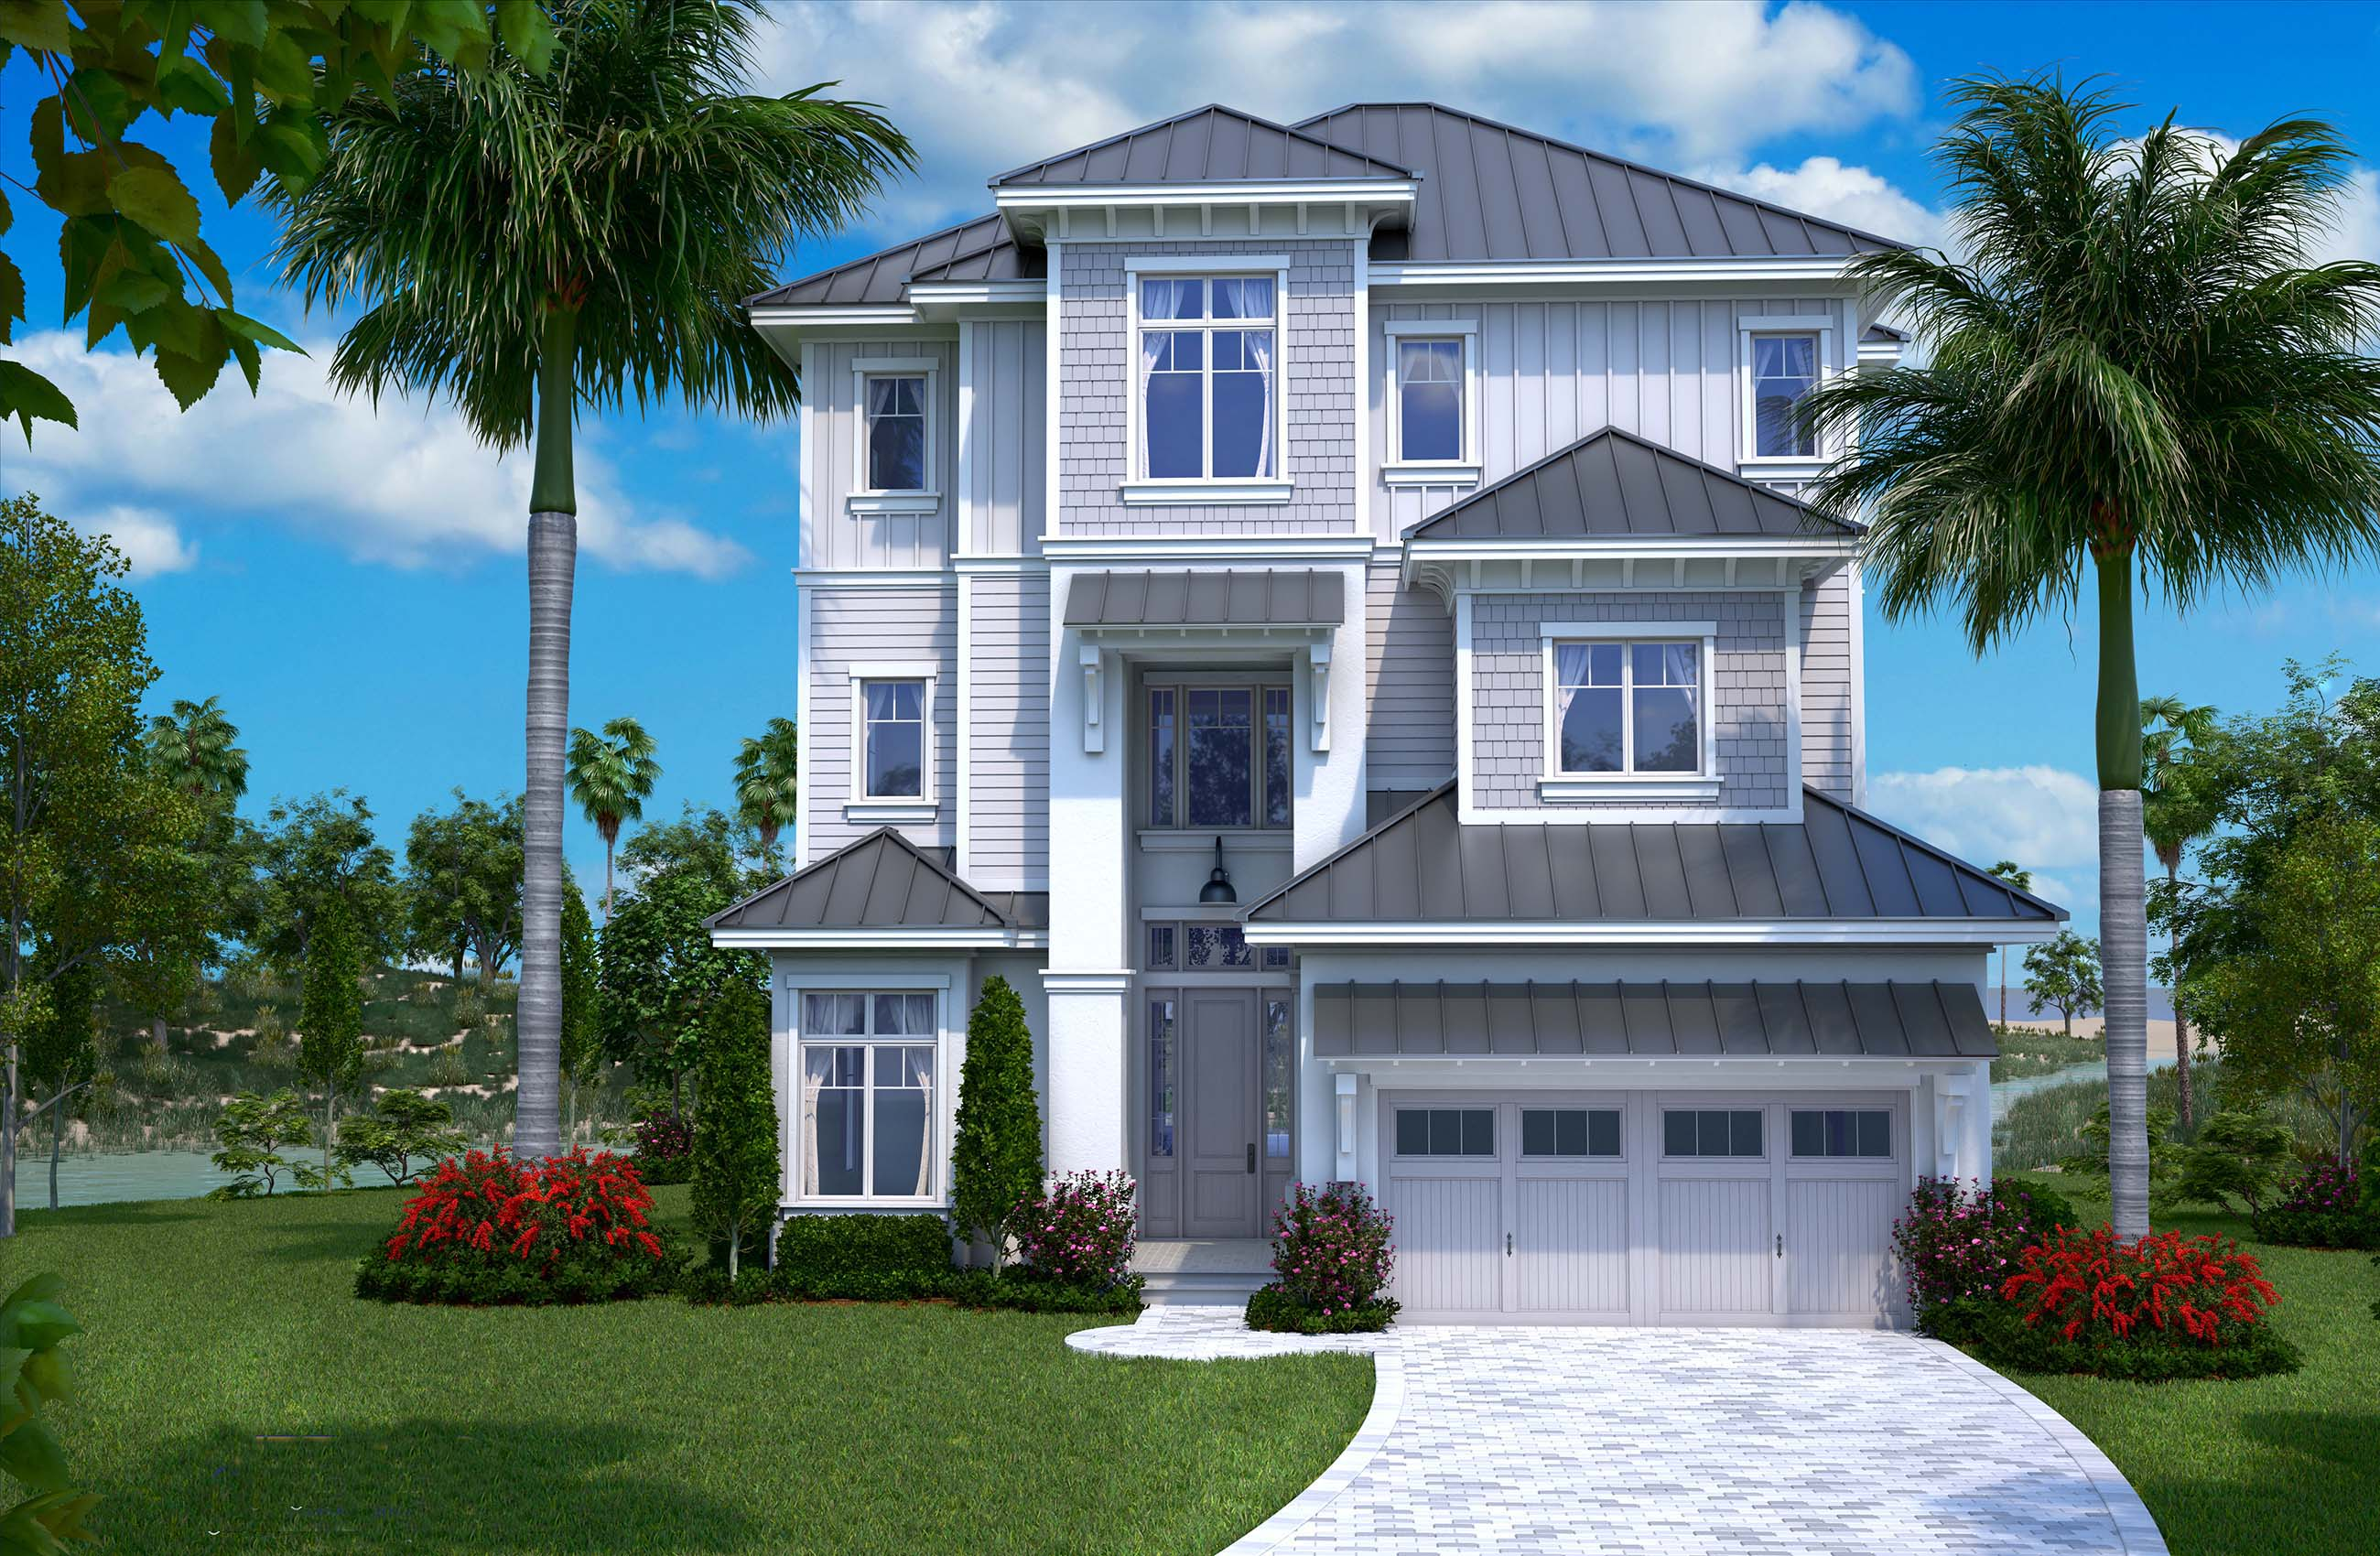 Beachfront house plan 175 1137 5 bedrm 4800 sq ft home for Oceanfront house plans